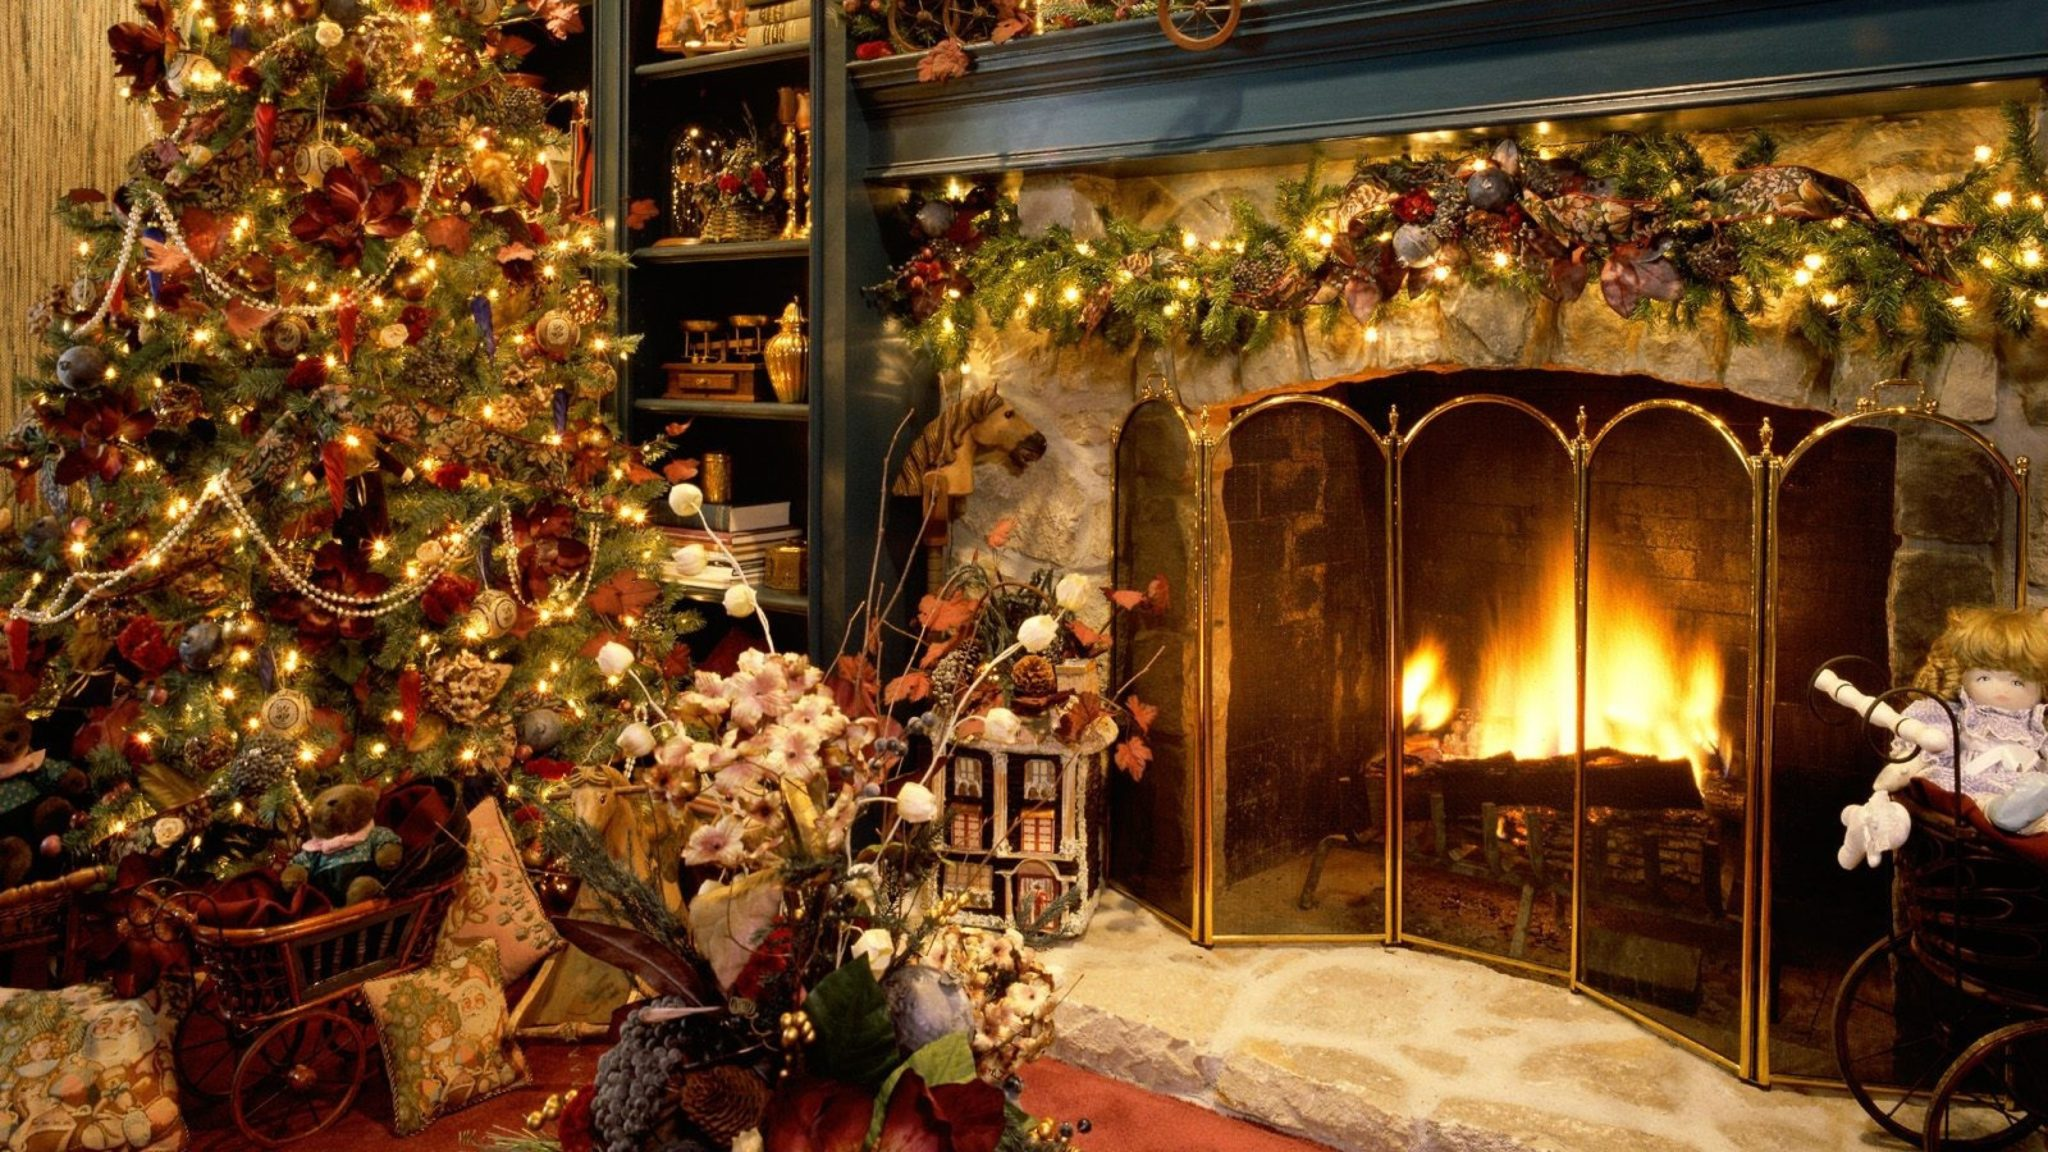 Christmas Fireplace Wallpaper 2 MICHAEL WALSH QUALITY BOOKS 2048x1152